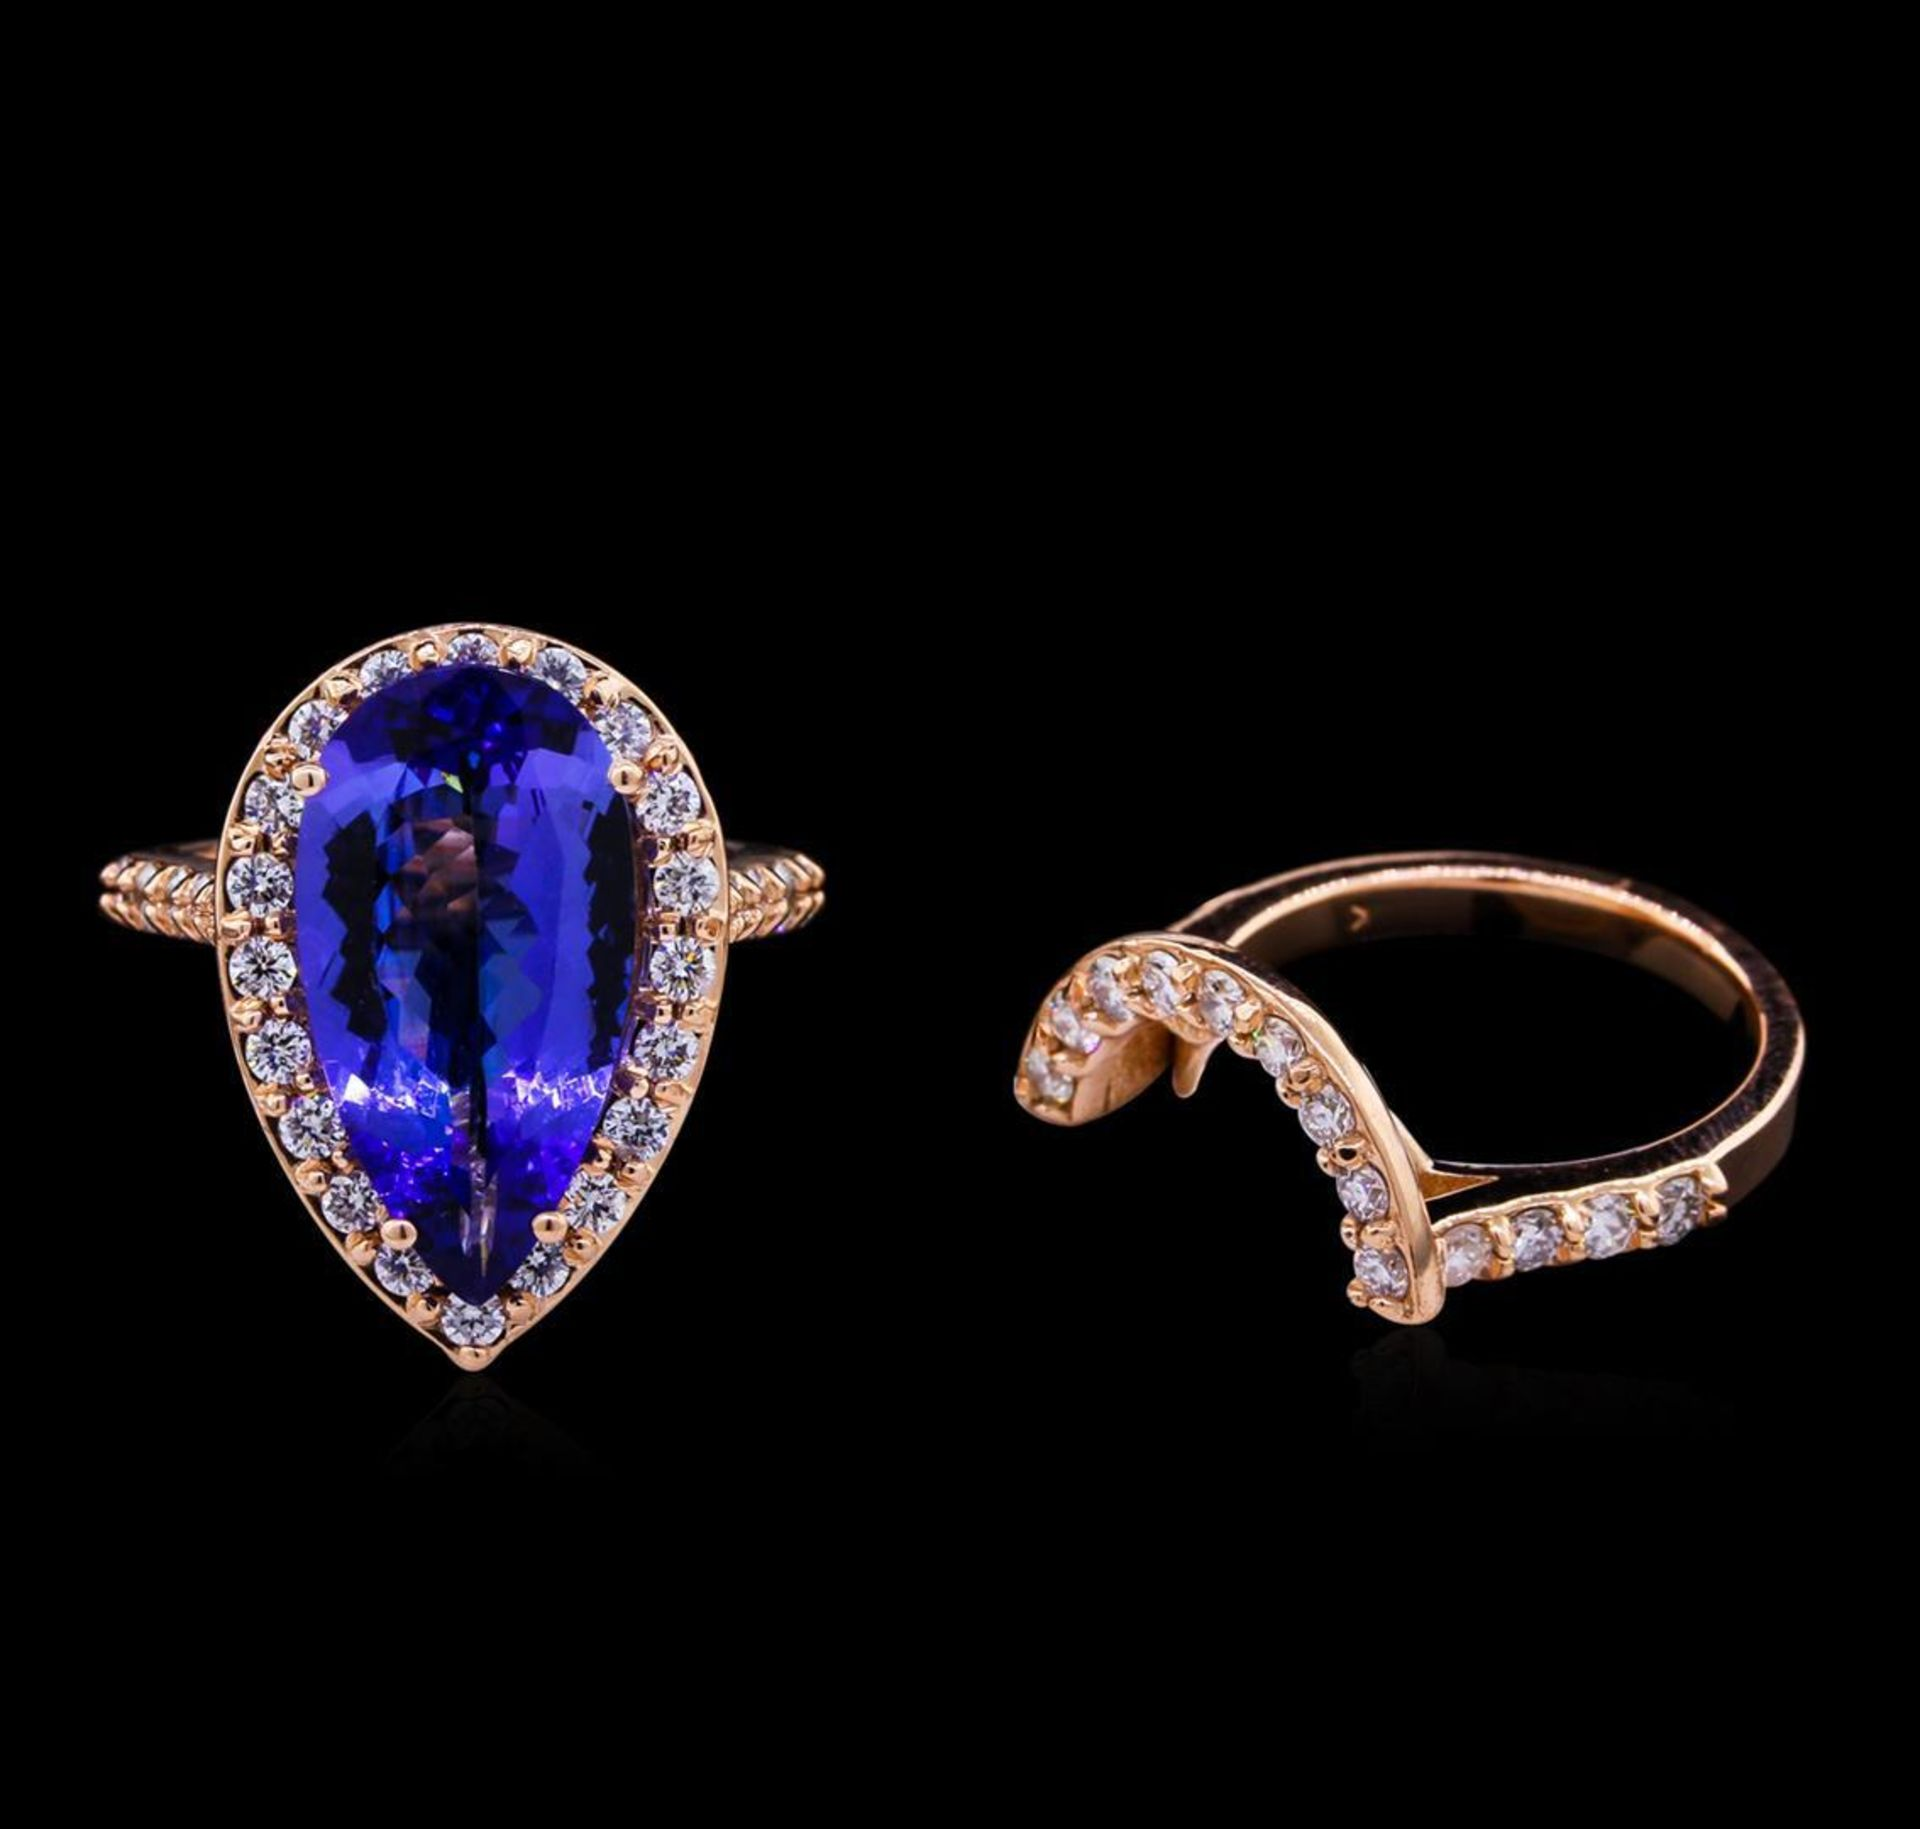 5.53 ctw Tanzanite and Diamond Ring Set - 14KT Rose Gold - Image 2 of 3